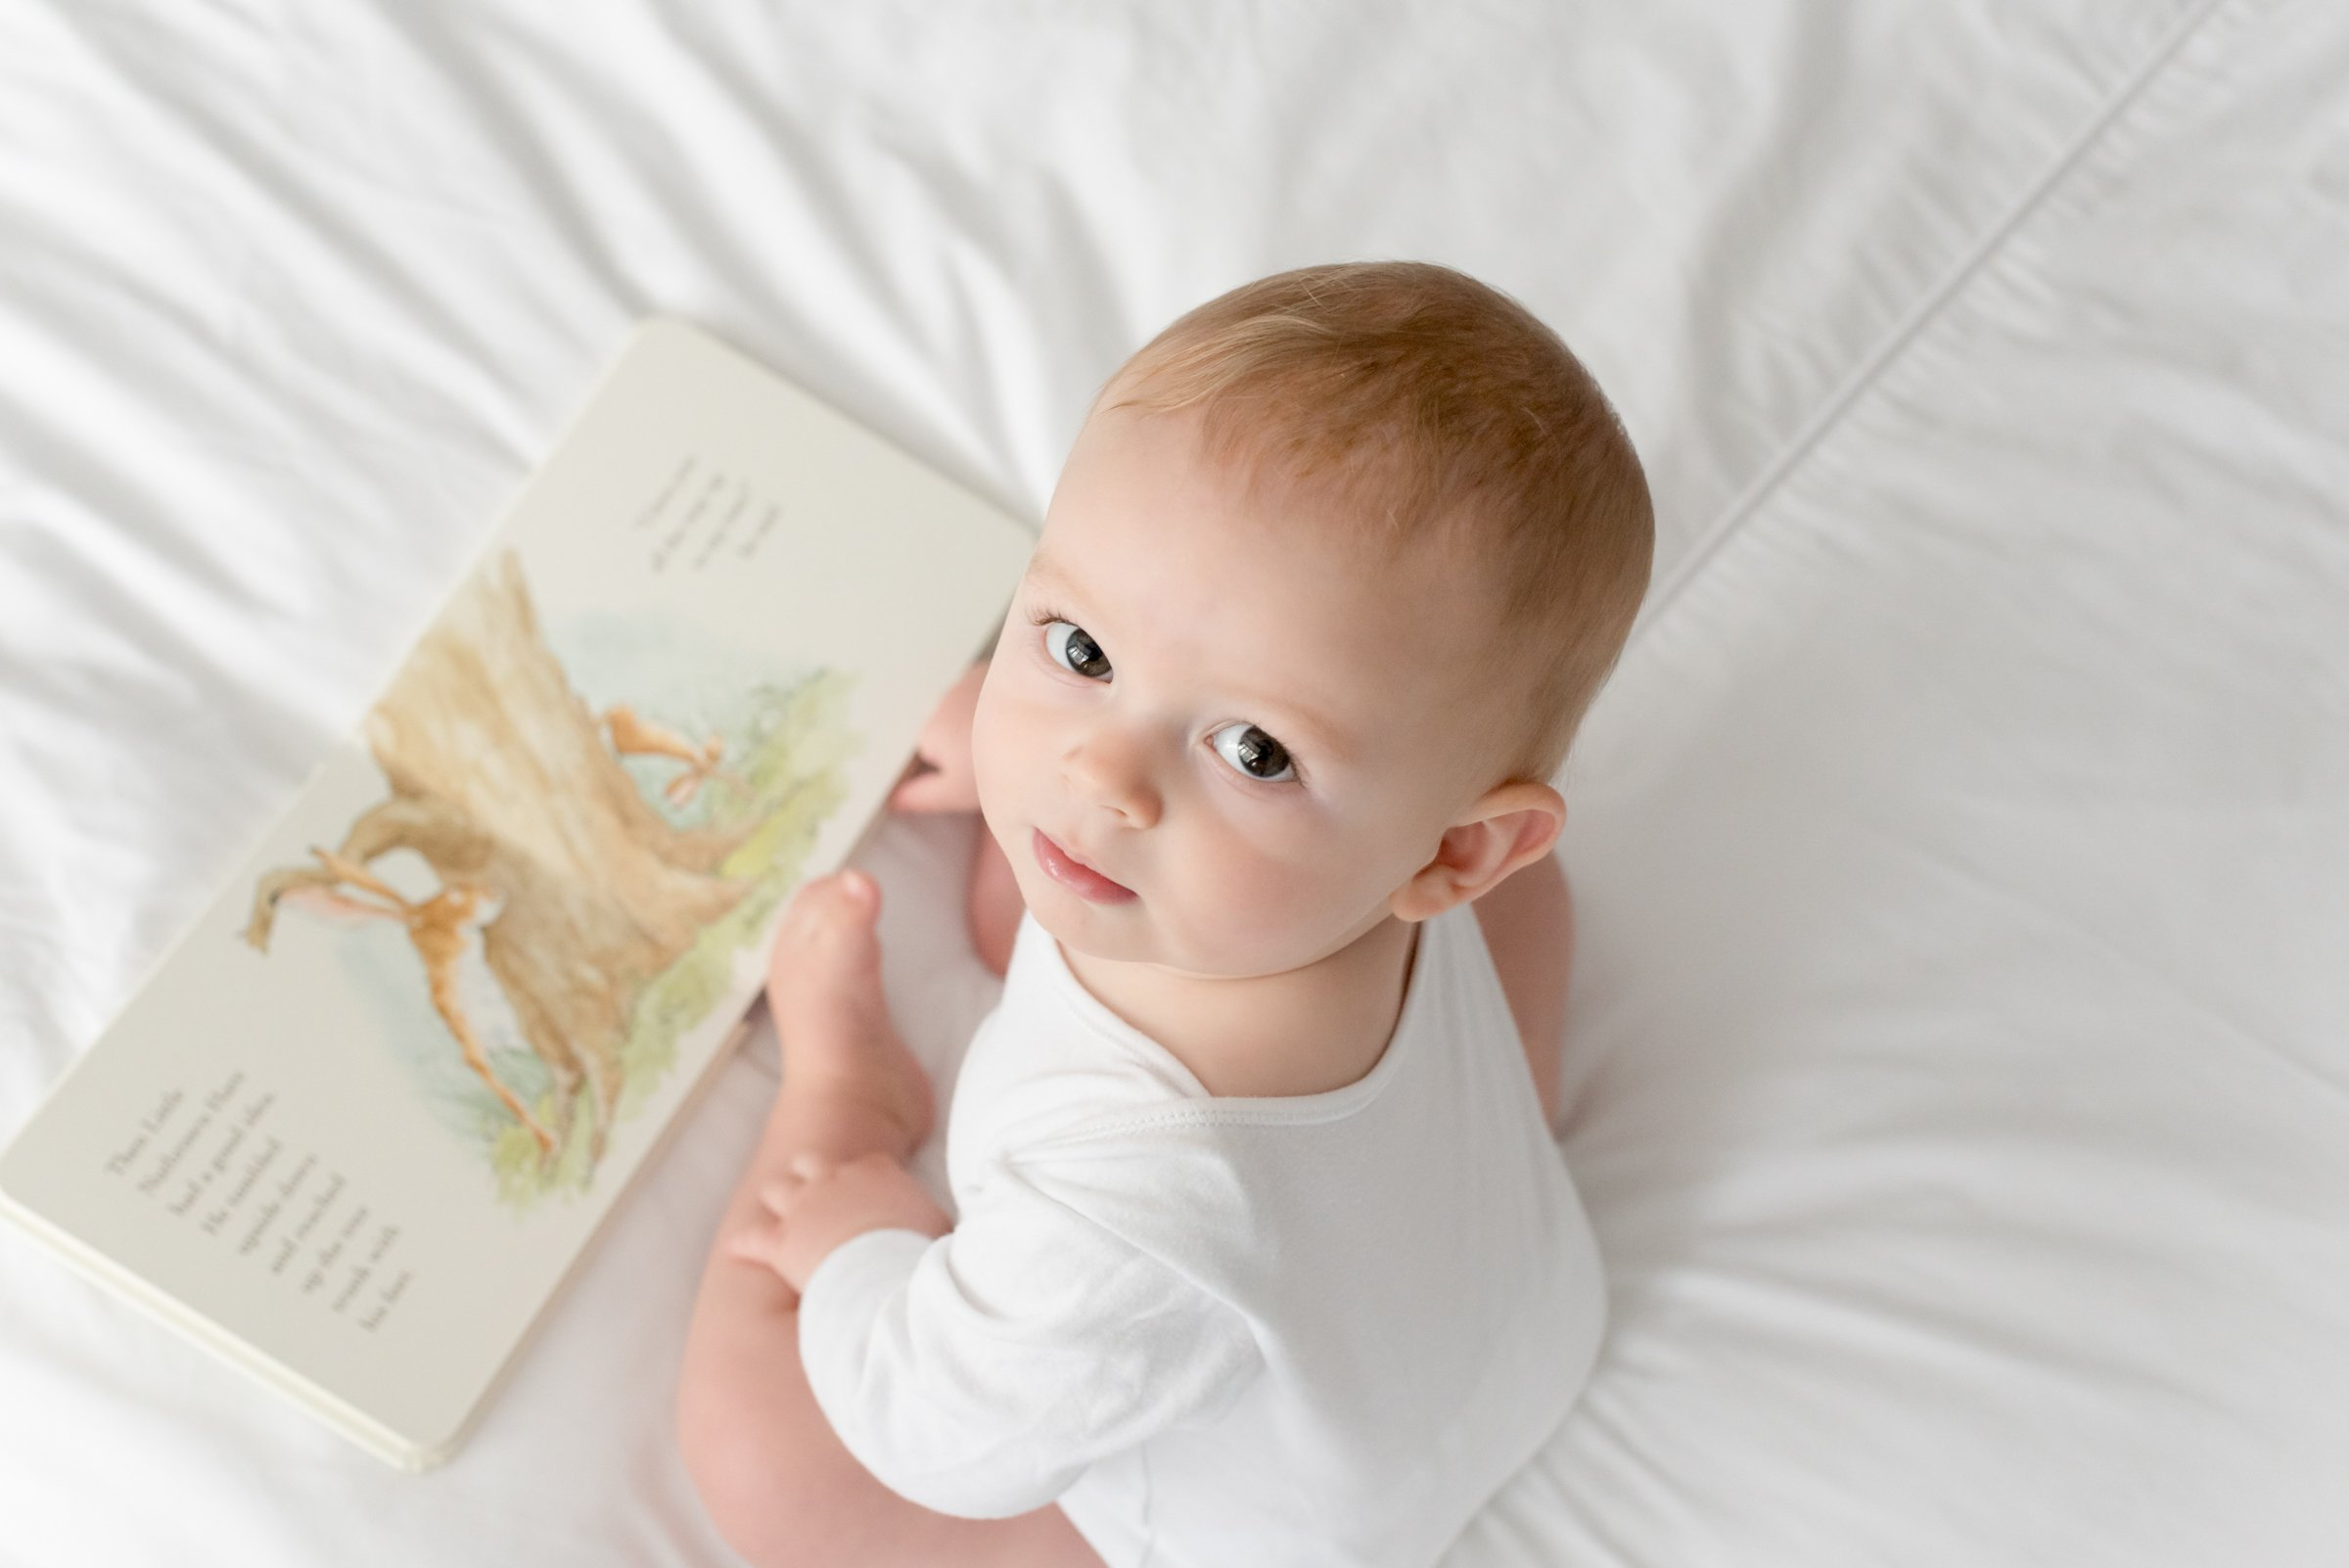 Toddler reading book in photo shoot